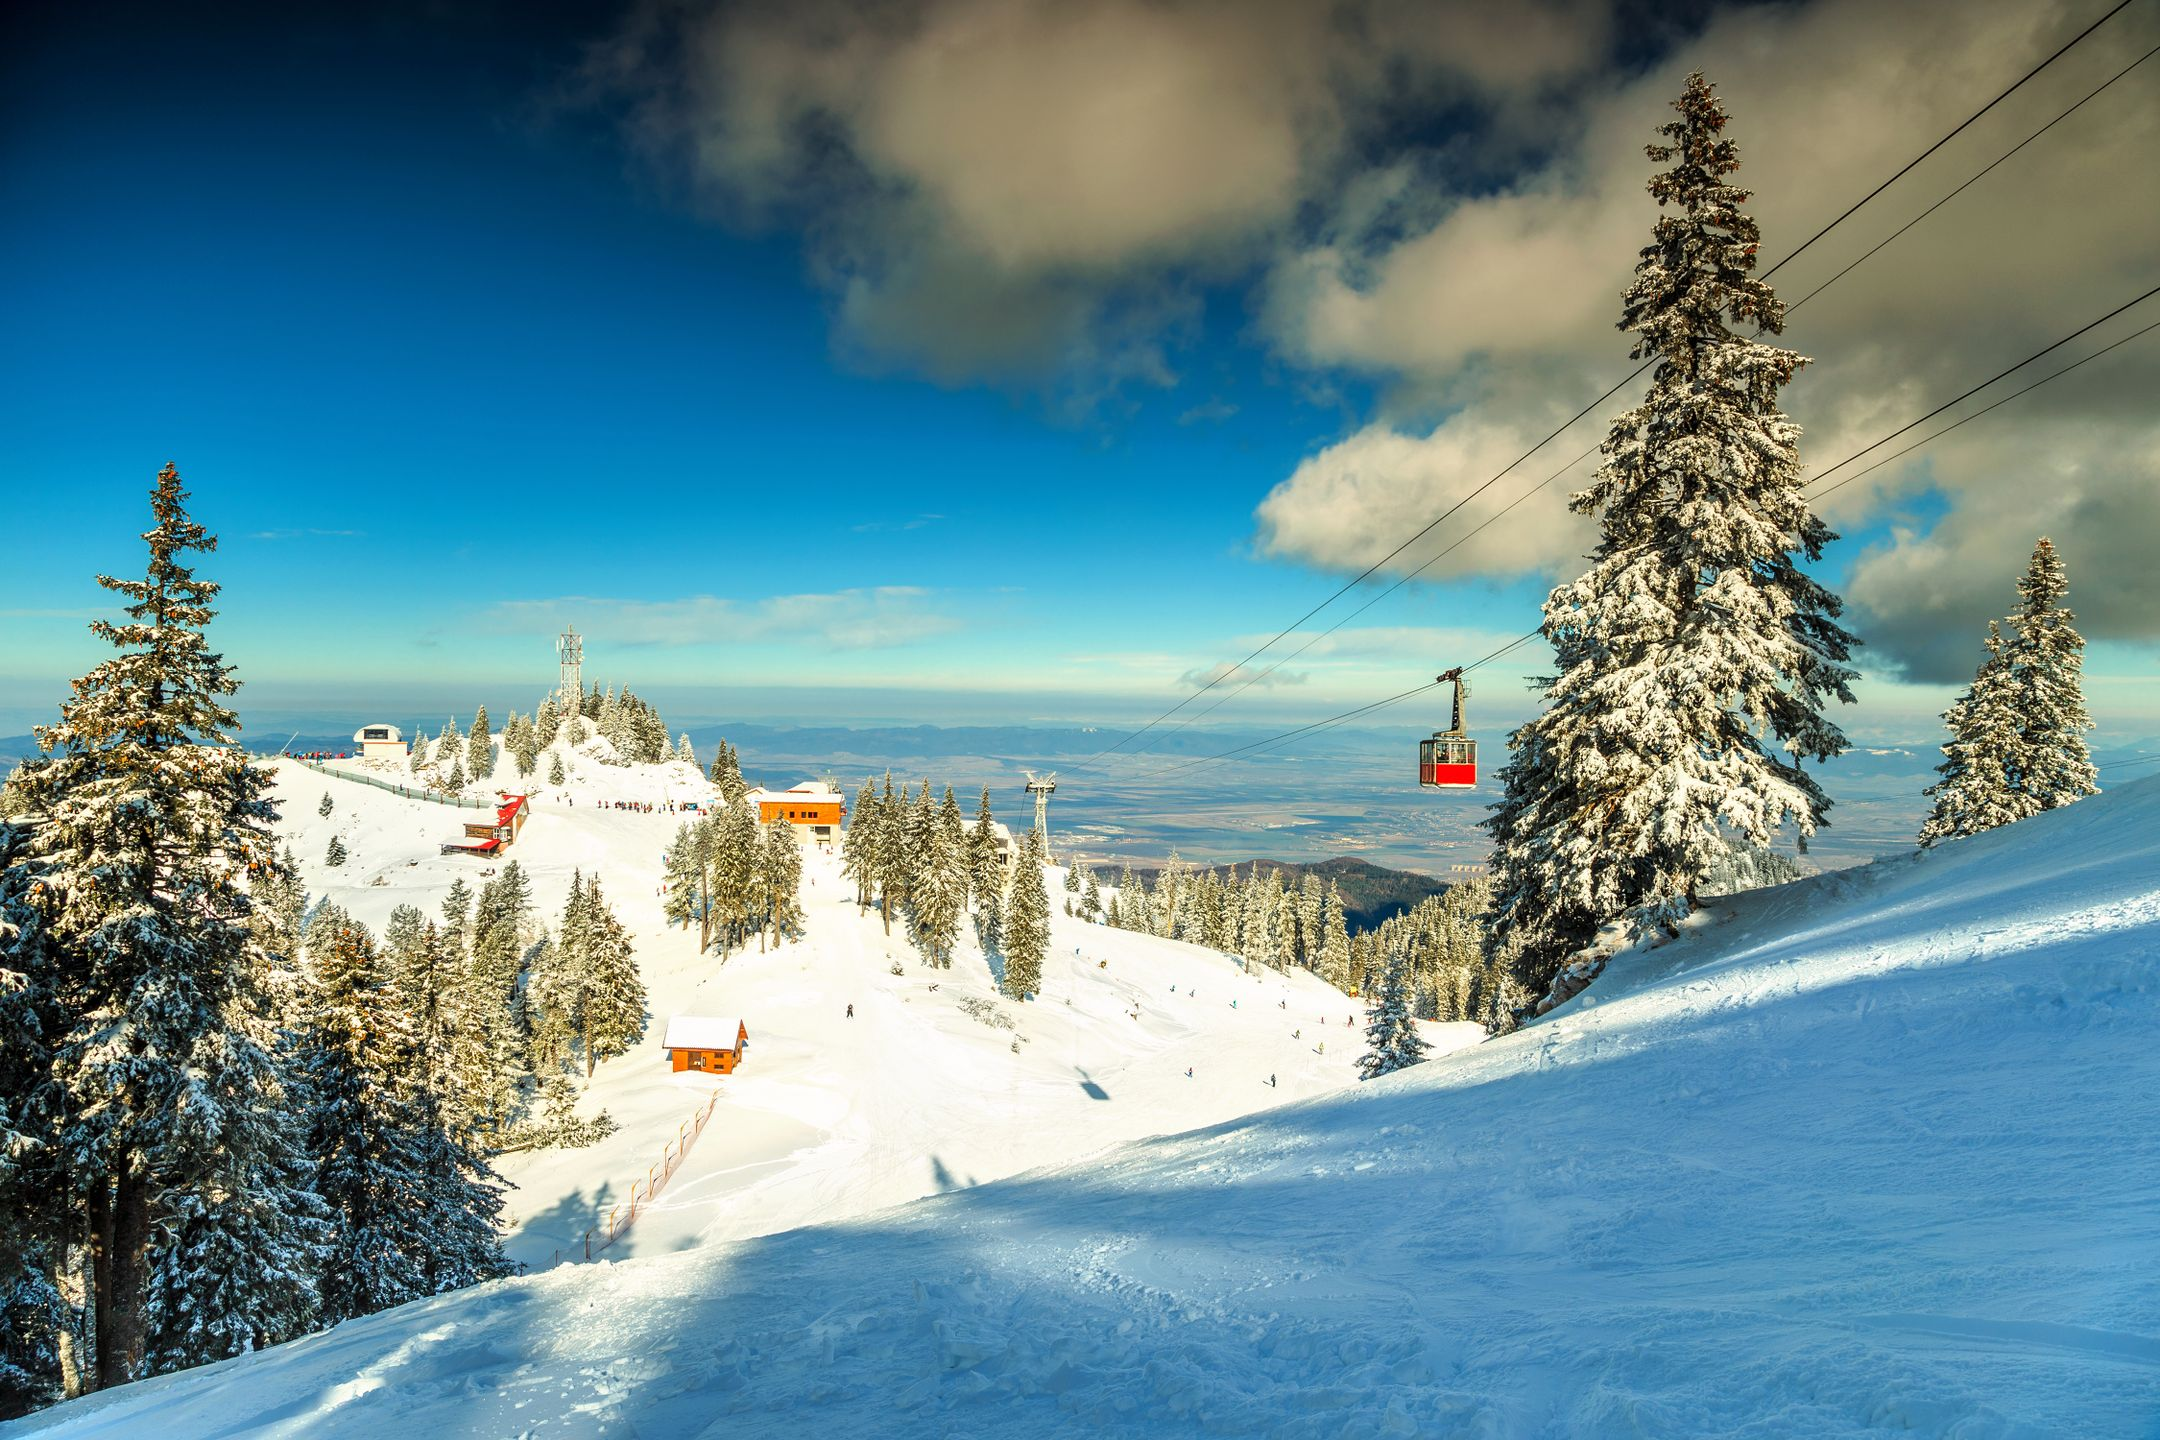 Skiing Romania ski resort Poiana Brasov ripatrip travel big